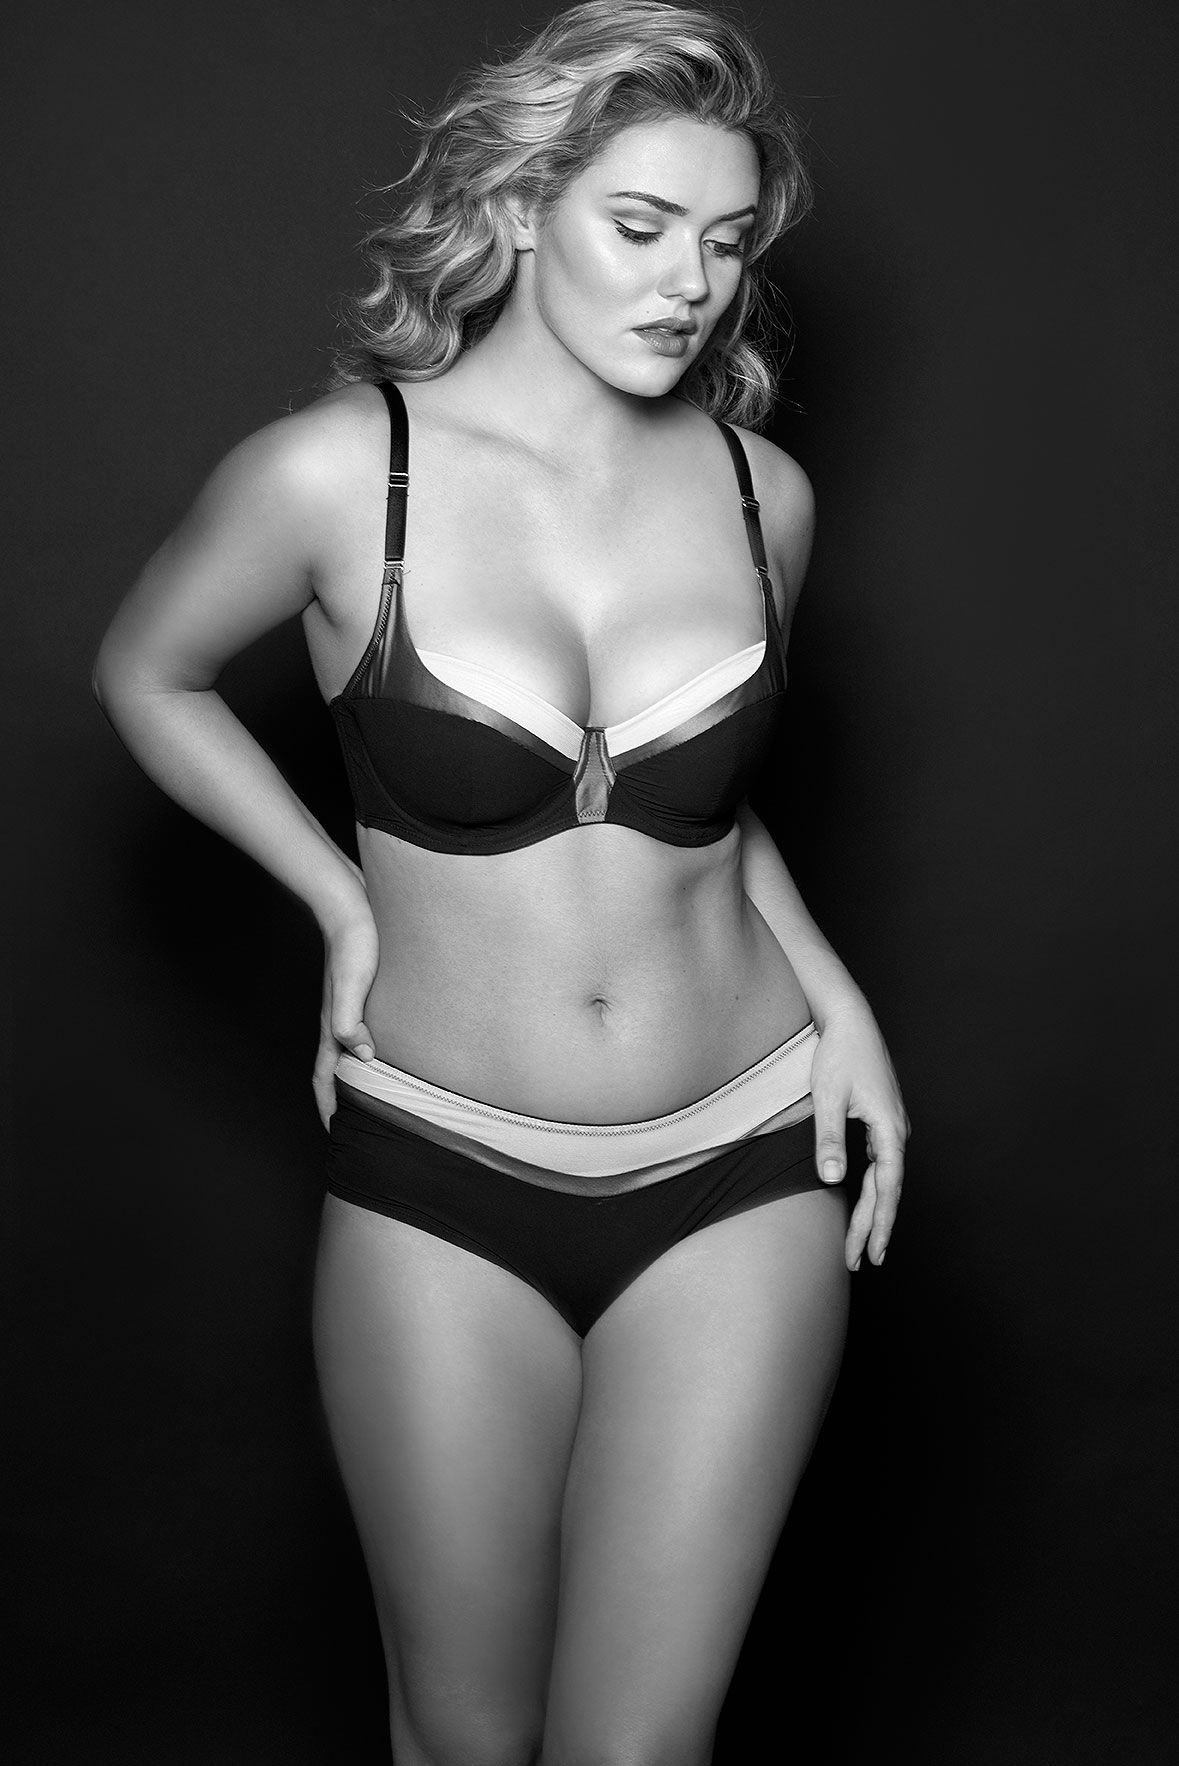 Lingerie-la-femme-larger-cup-lingerie-plus-size-model-kate-m-milk-models-all-undone-08